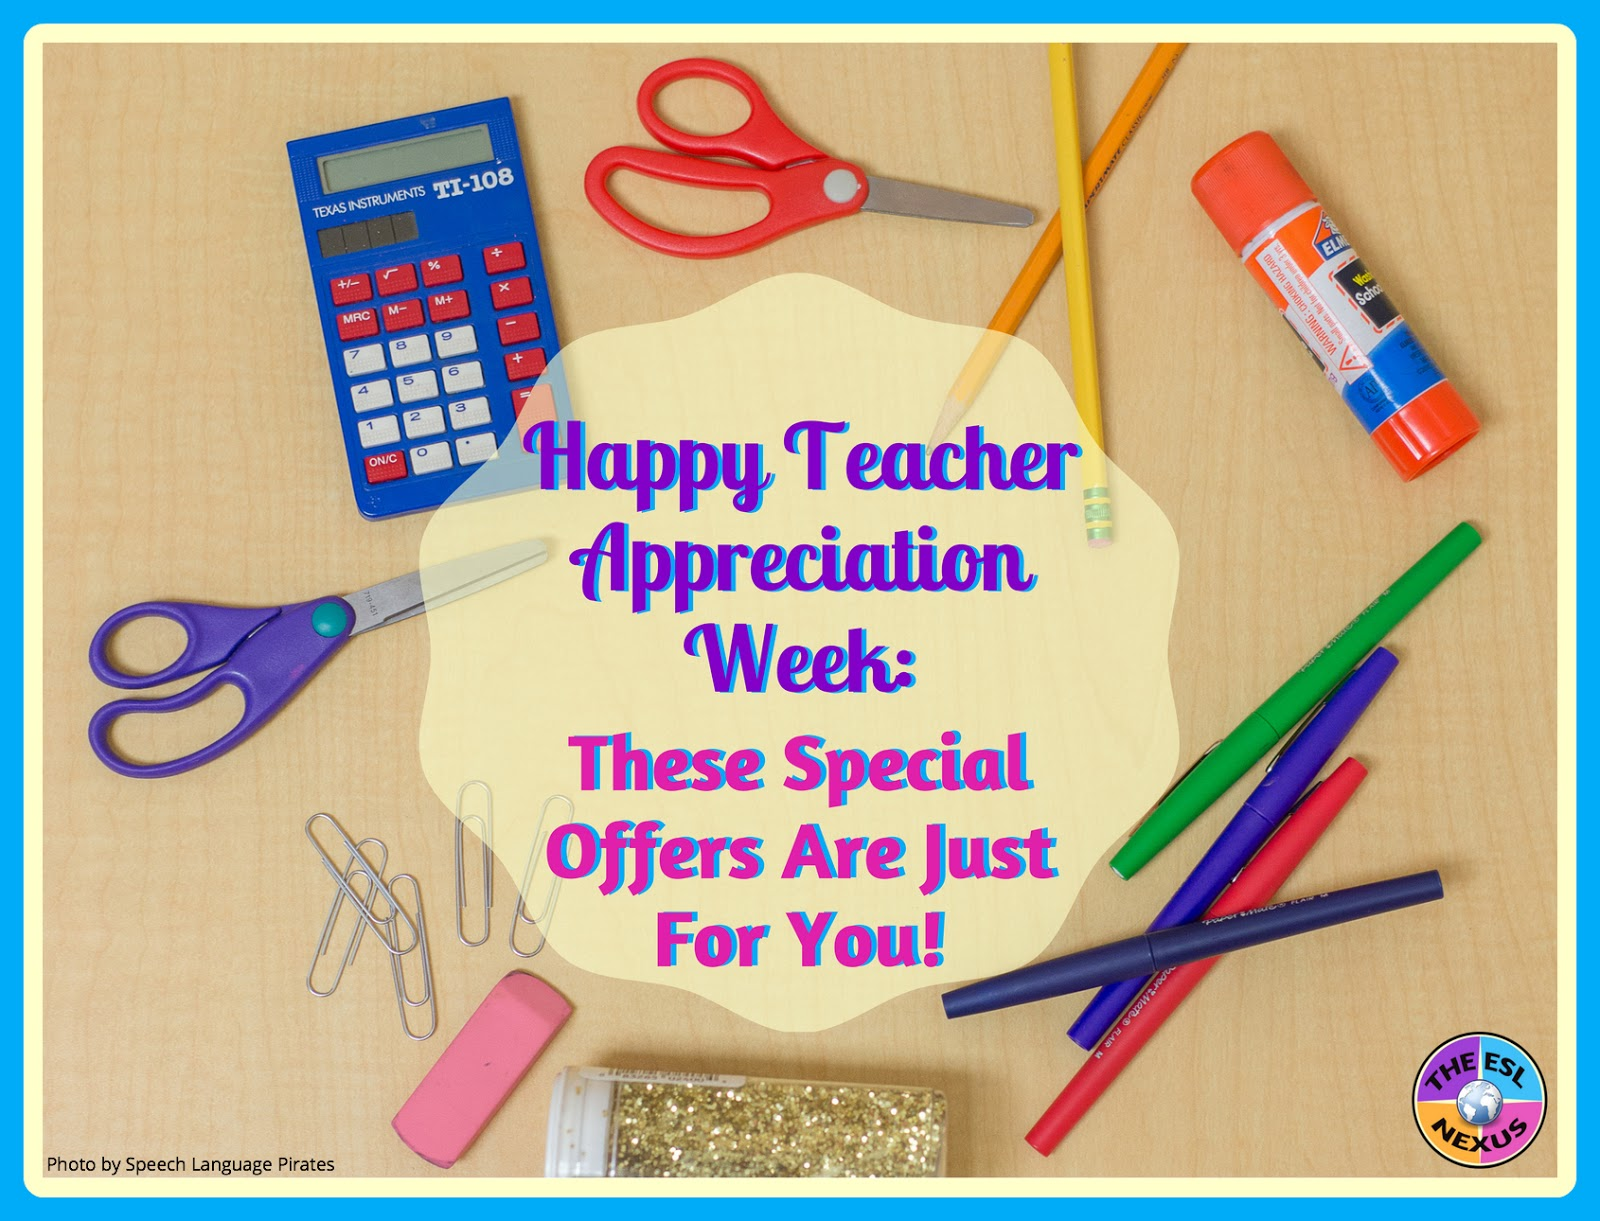 Educators enjoy some free offers by various companies and organizations during Teacher Appreciation Week 2017!